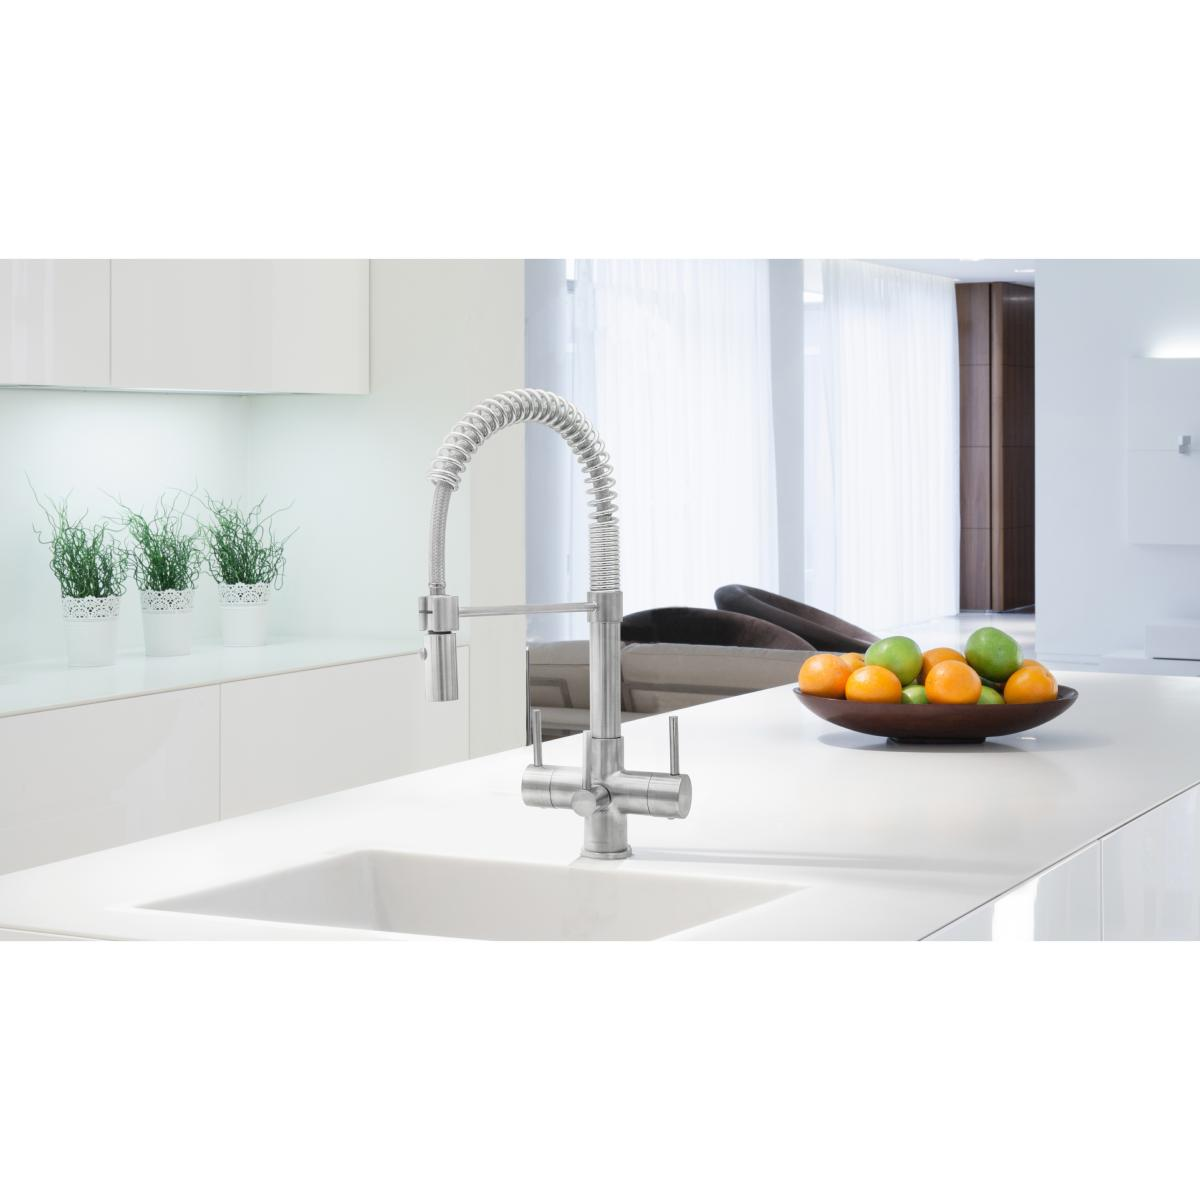 Milano Spray 3 Lever, 3 Way Kitchen Tap Brushed Steel & EcoAqua Water Filter System